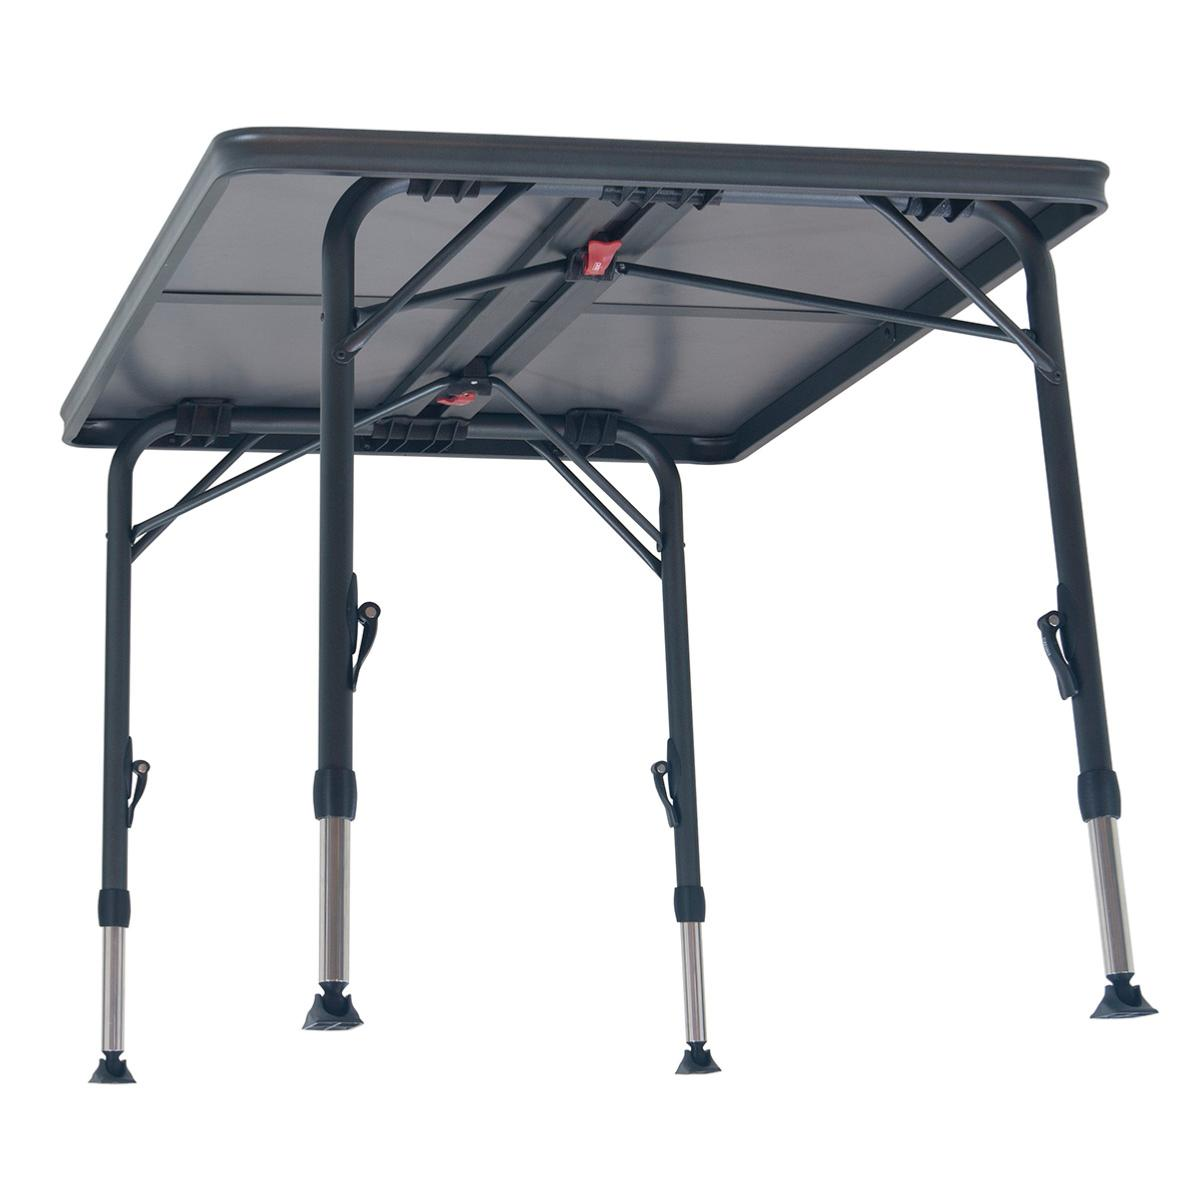 Table Pliante Légère Table De Camping Legere De Crespo 120x85 Cm